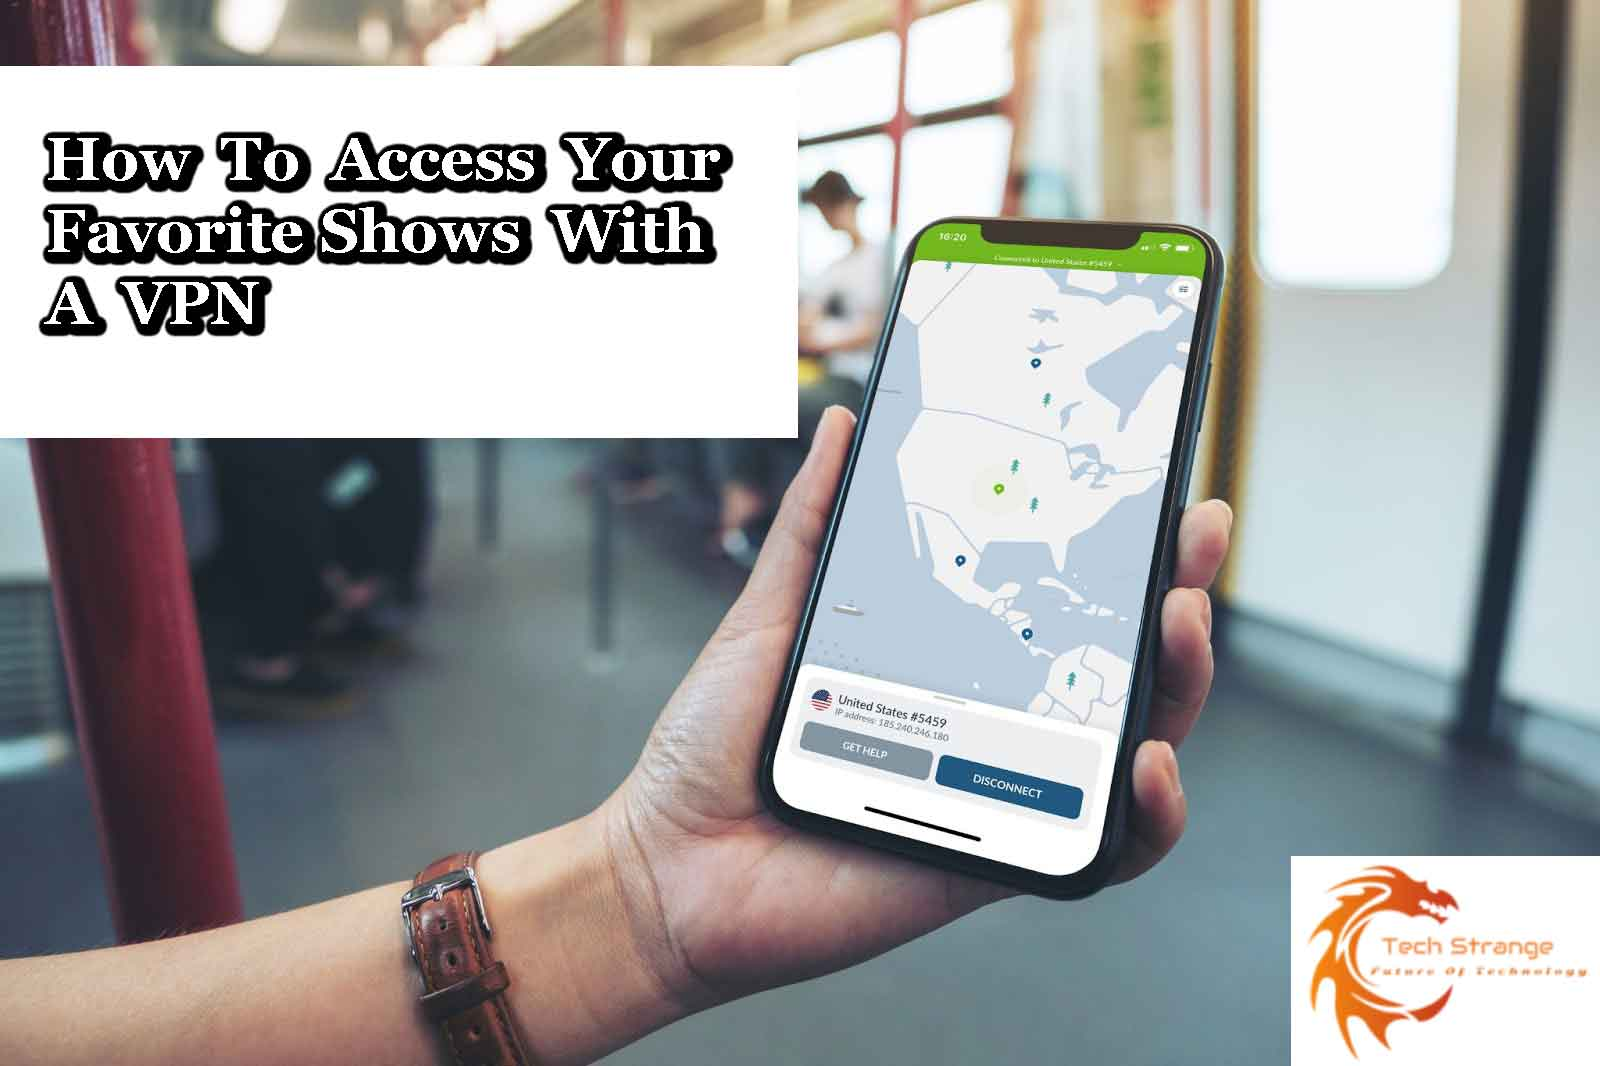 access-your-favorite-shows-with-a-VPN